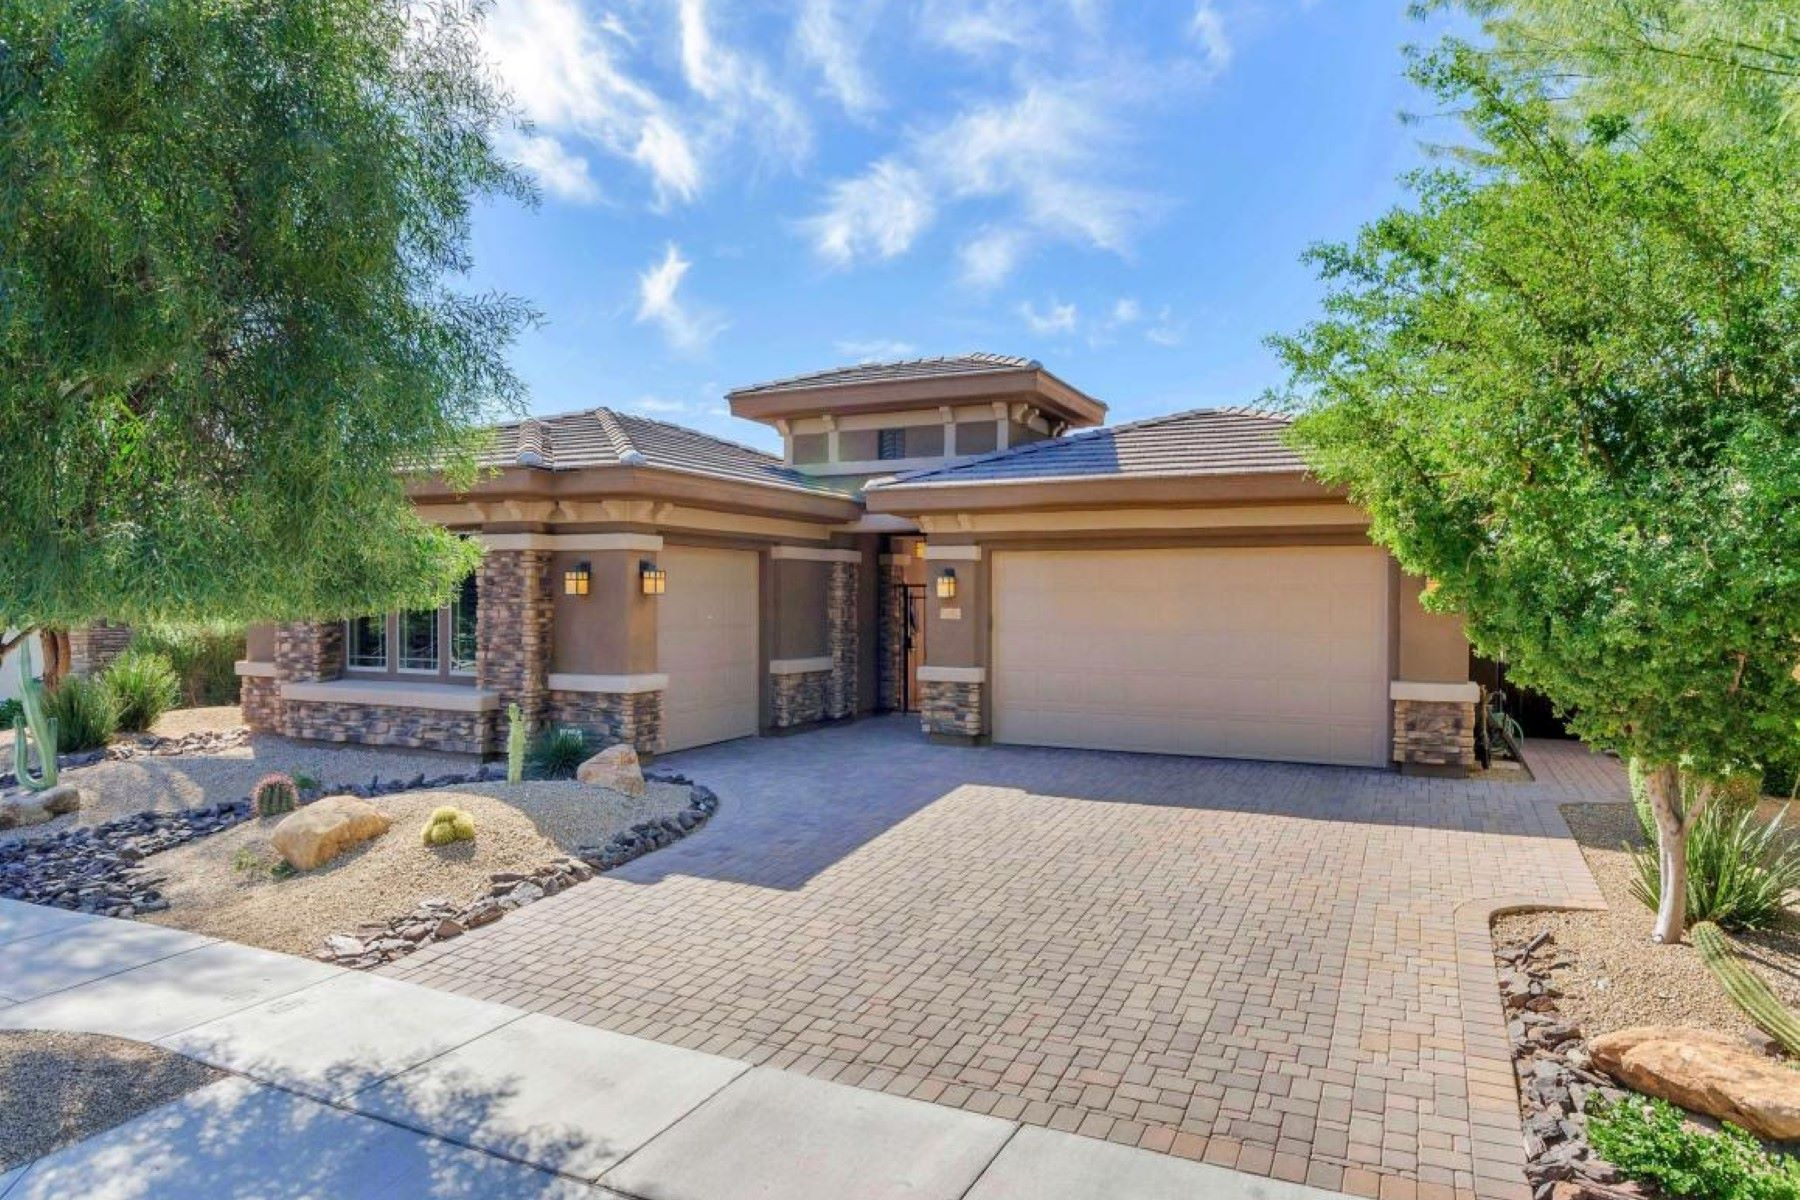 Single Family Home for Sale at Stunningly beautiful home in Sonoran Foothills 1725 W Burnside Trl Phoenix, Arizona, 85085 United States